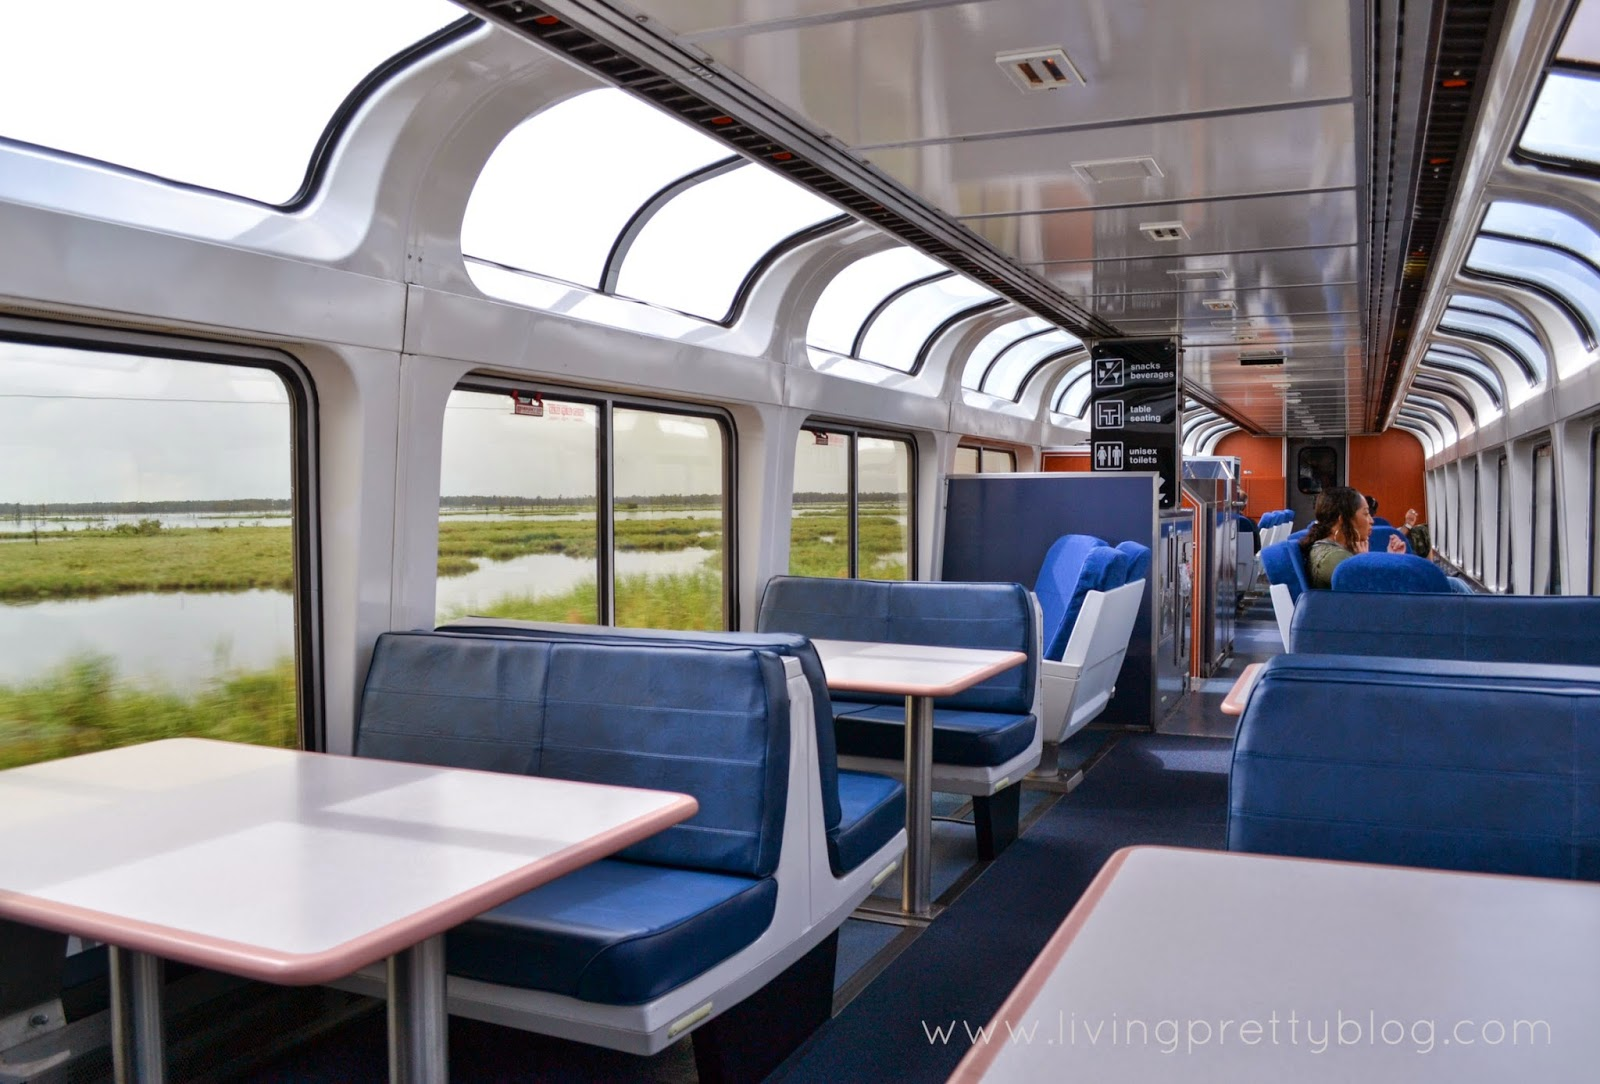 trip report chicago to new orleans with kids via amtrak emmerson and fifteenth. Black Bedroom Furniture Sets. Home Design Ideas